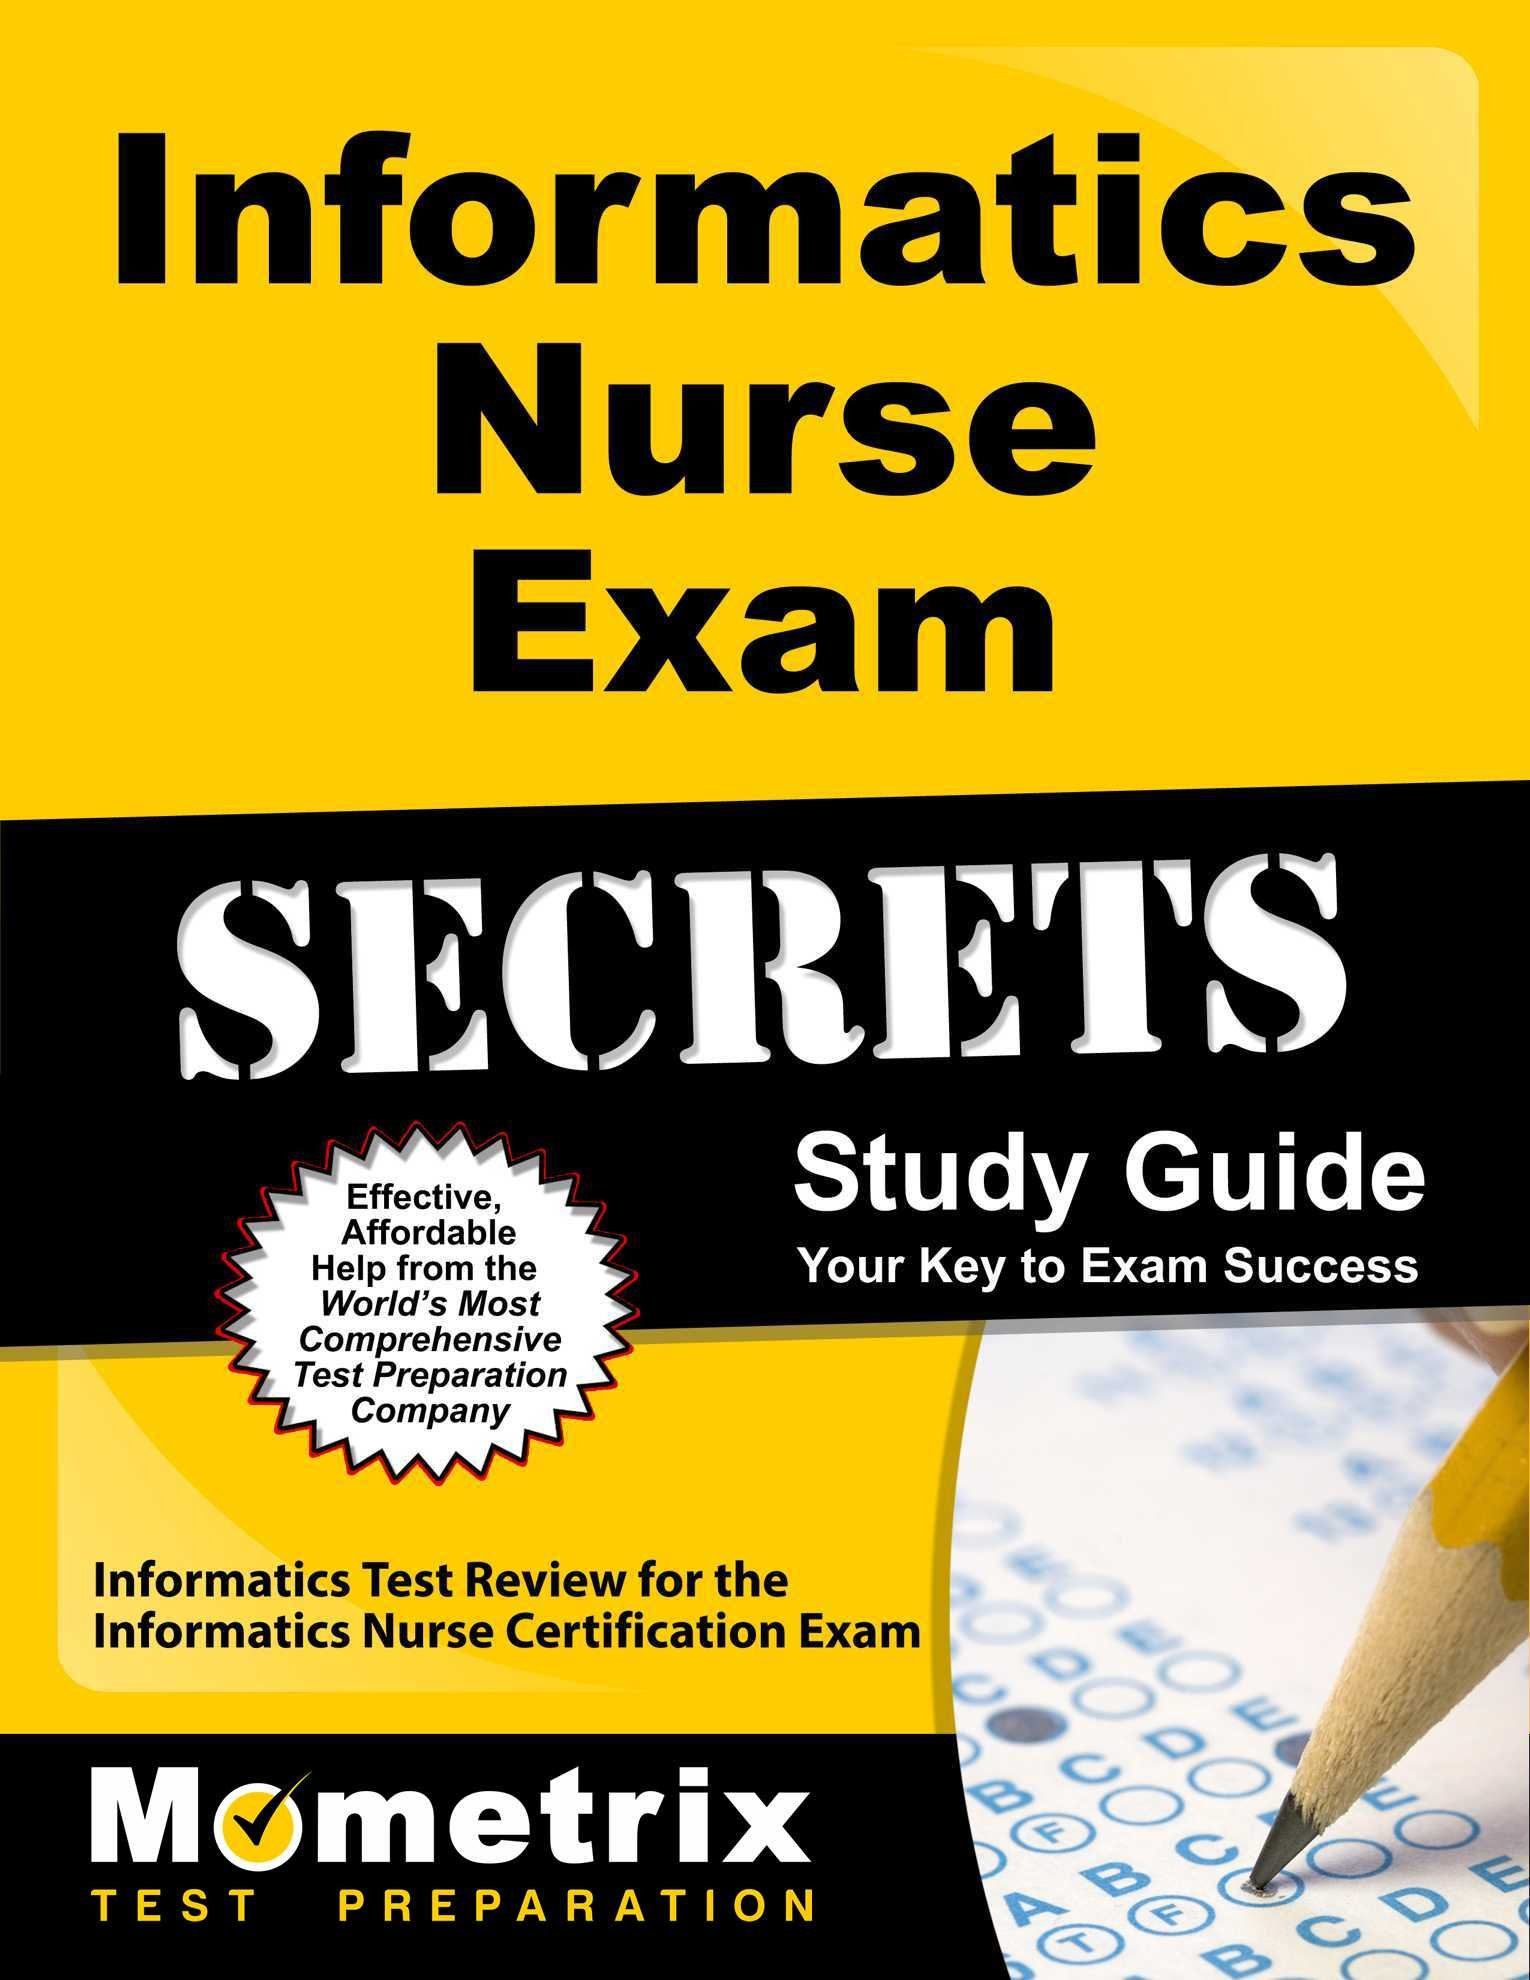 Buy Informatics Nurse Exam Secrets Informatics Test Review For The